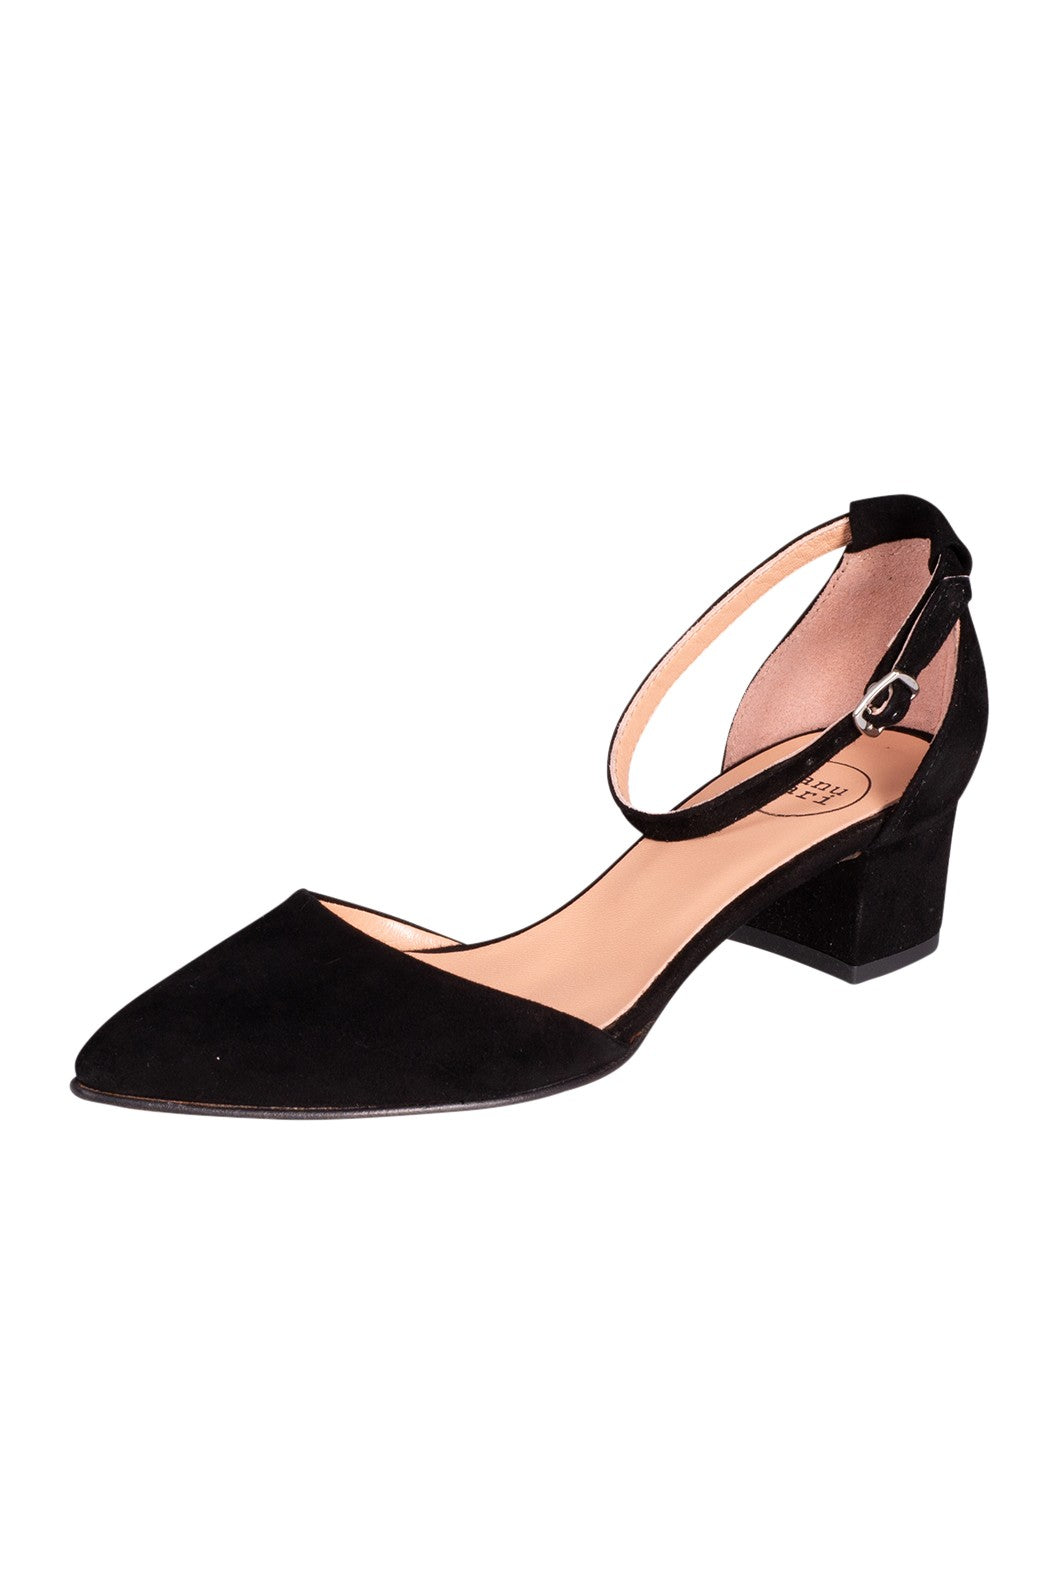 MELANIA Manu Mari Mary-Jane Black Suede